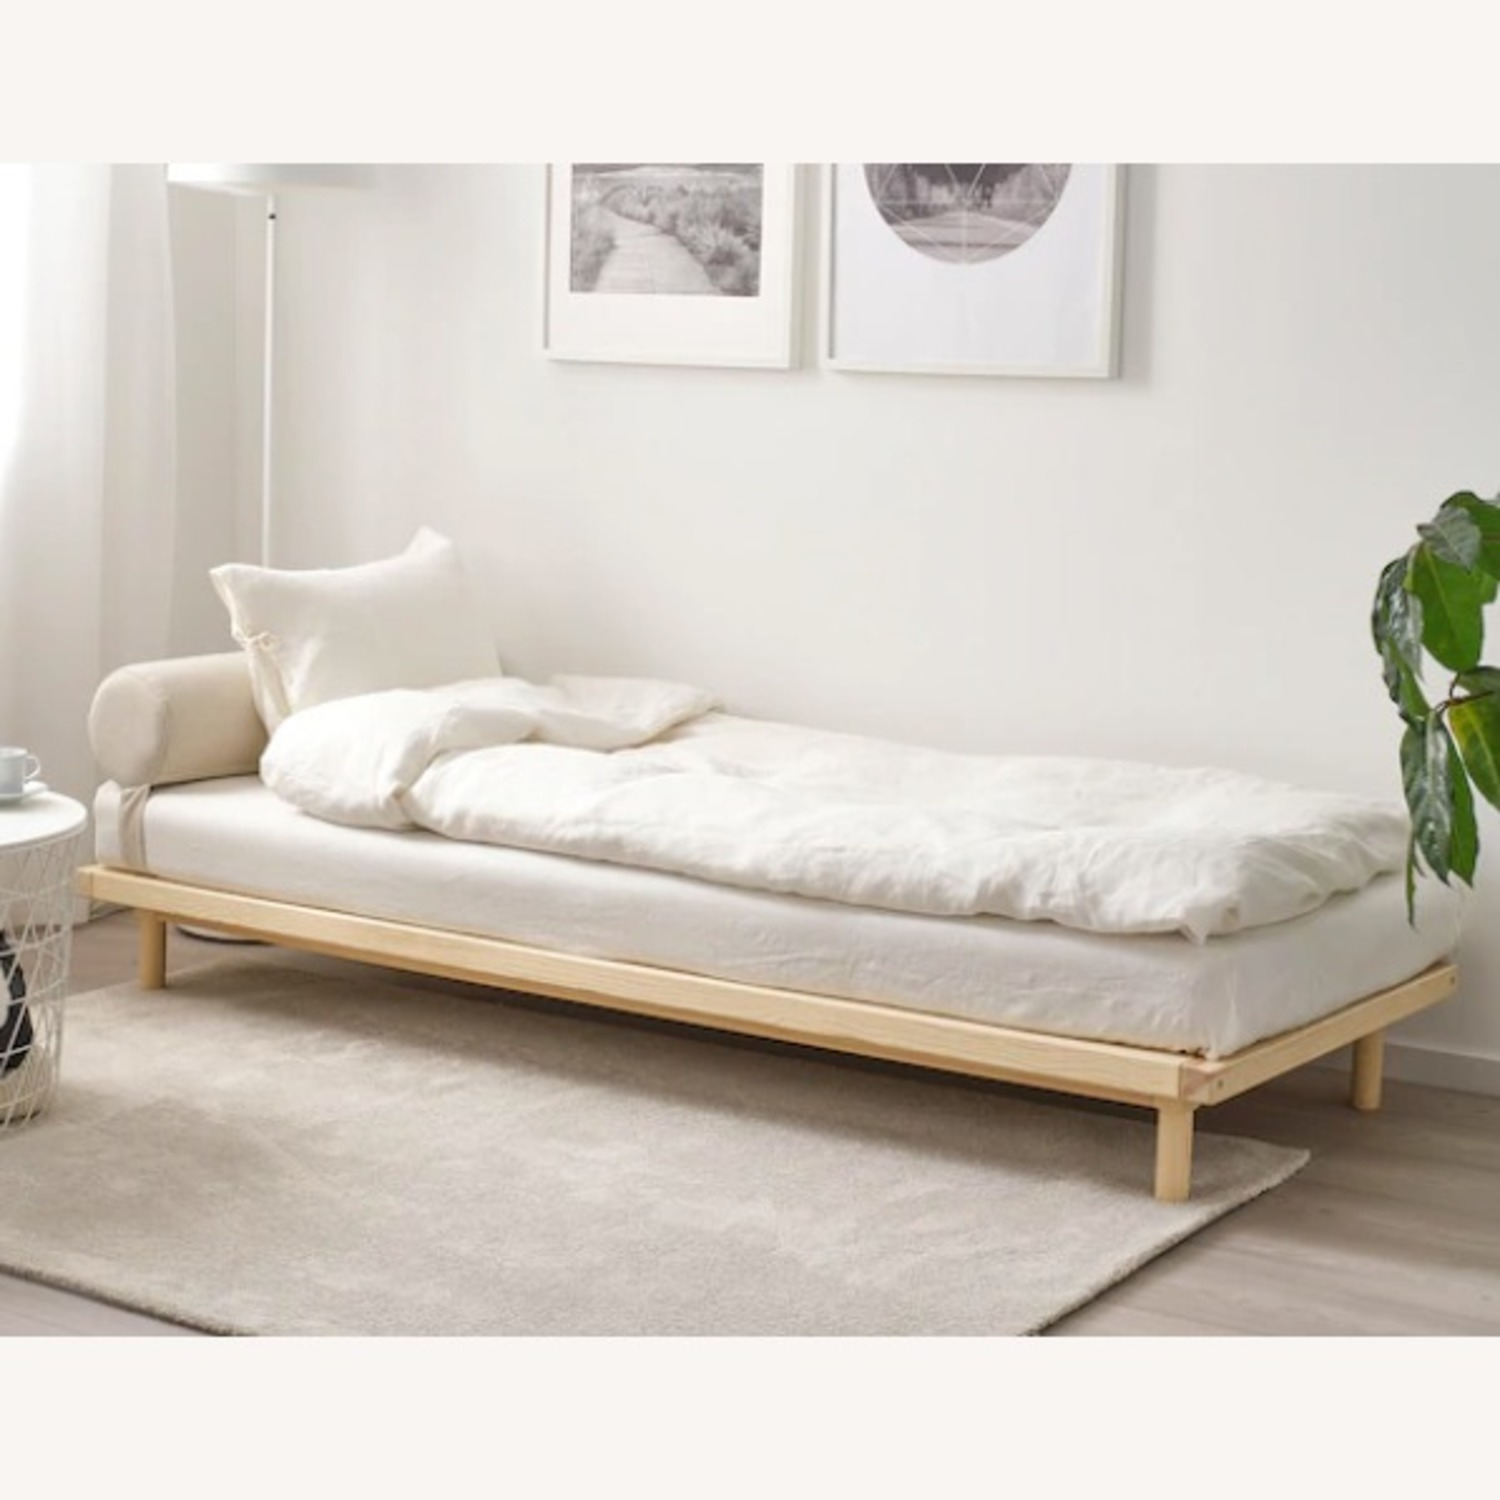 Ikea Virgil Abloh's Markerad Daybed - image-2